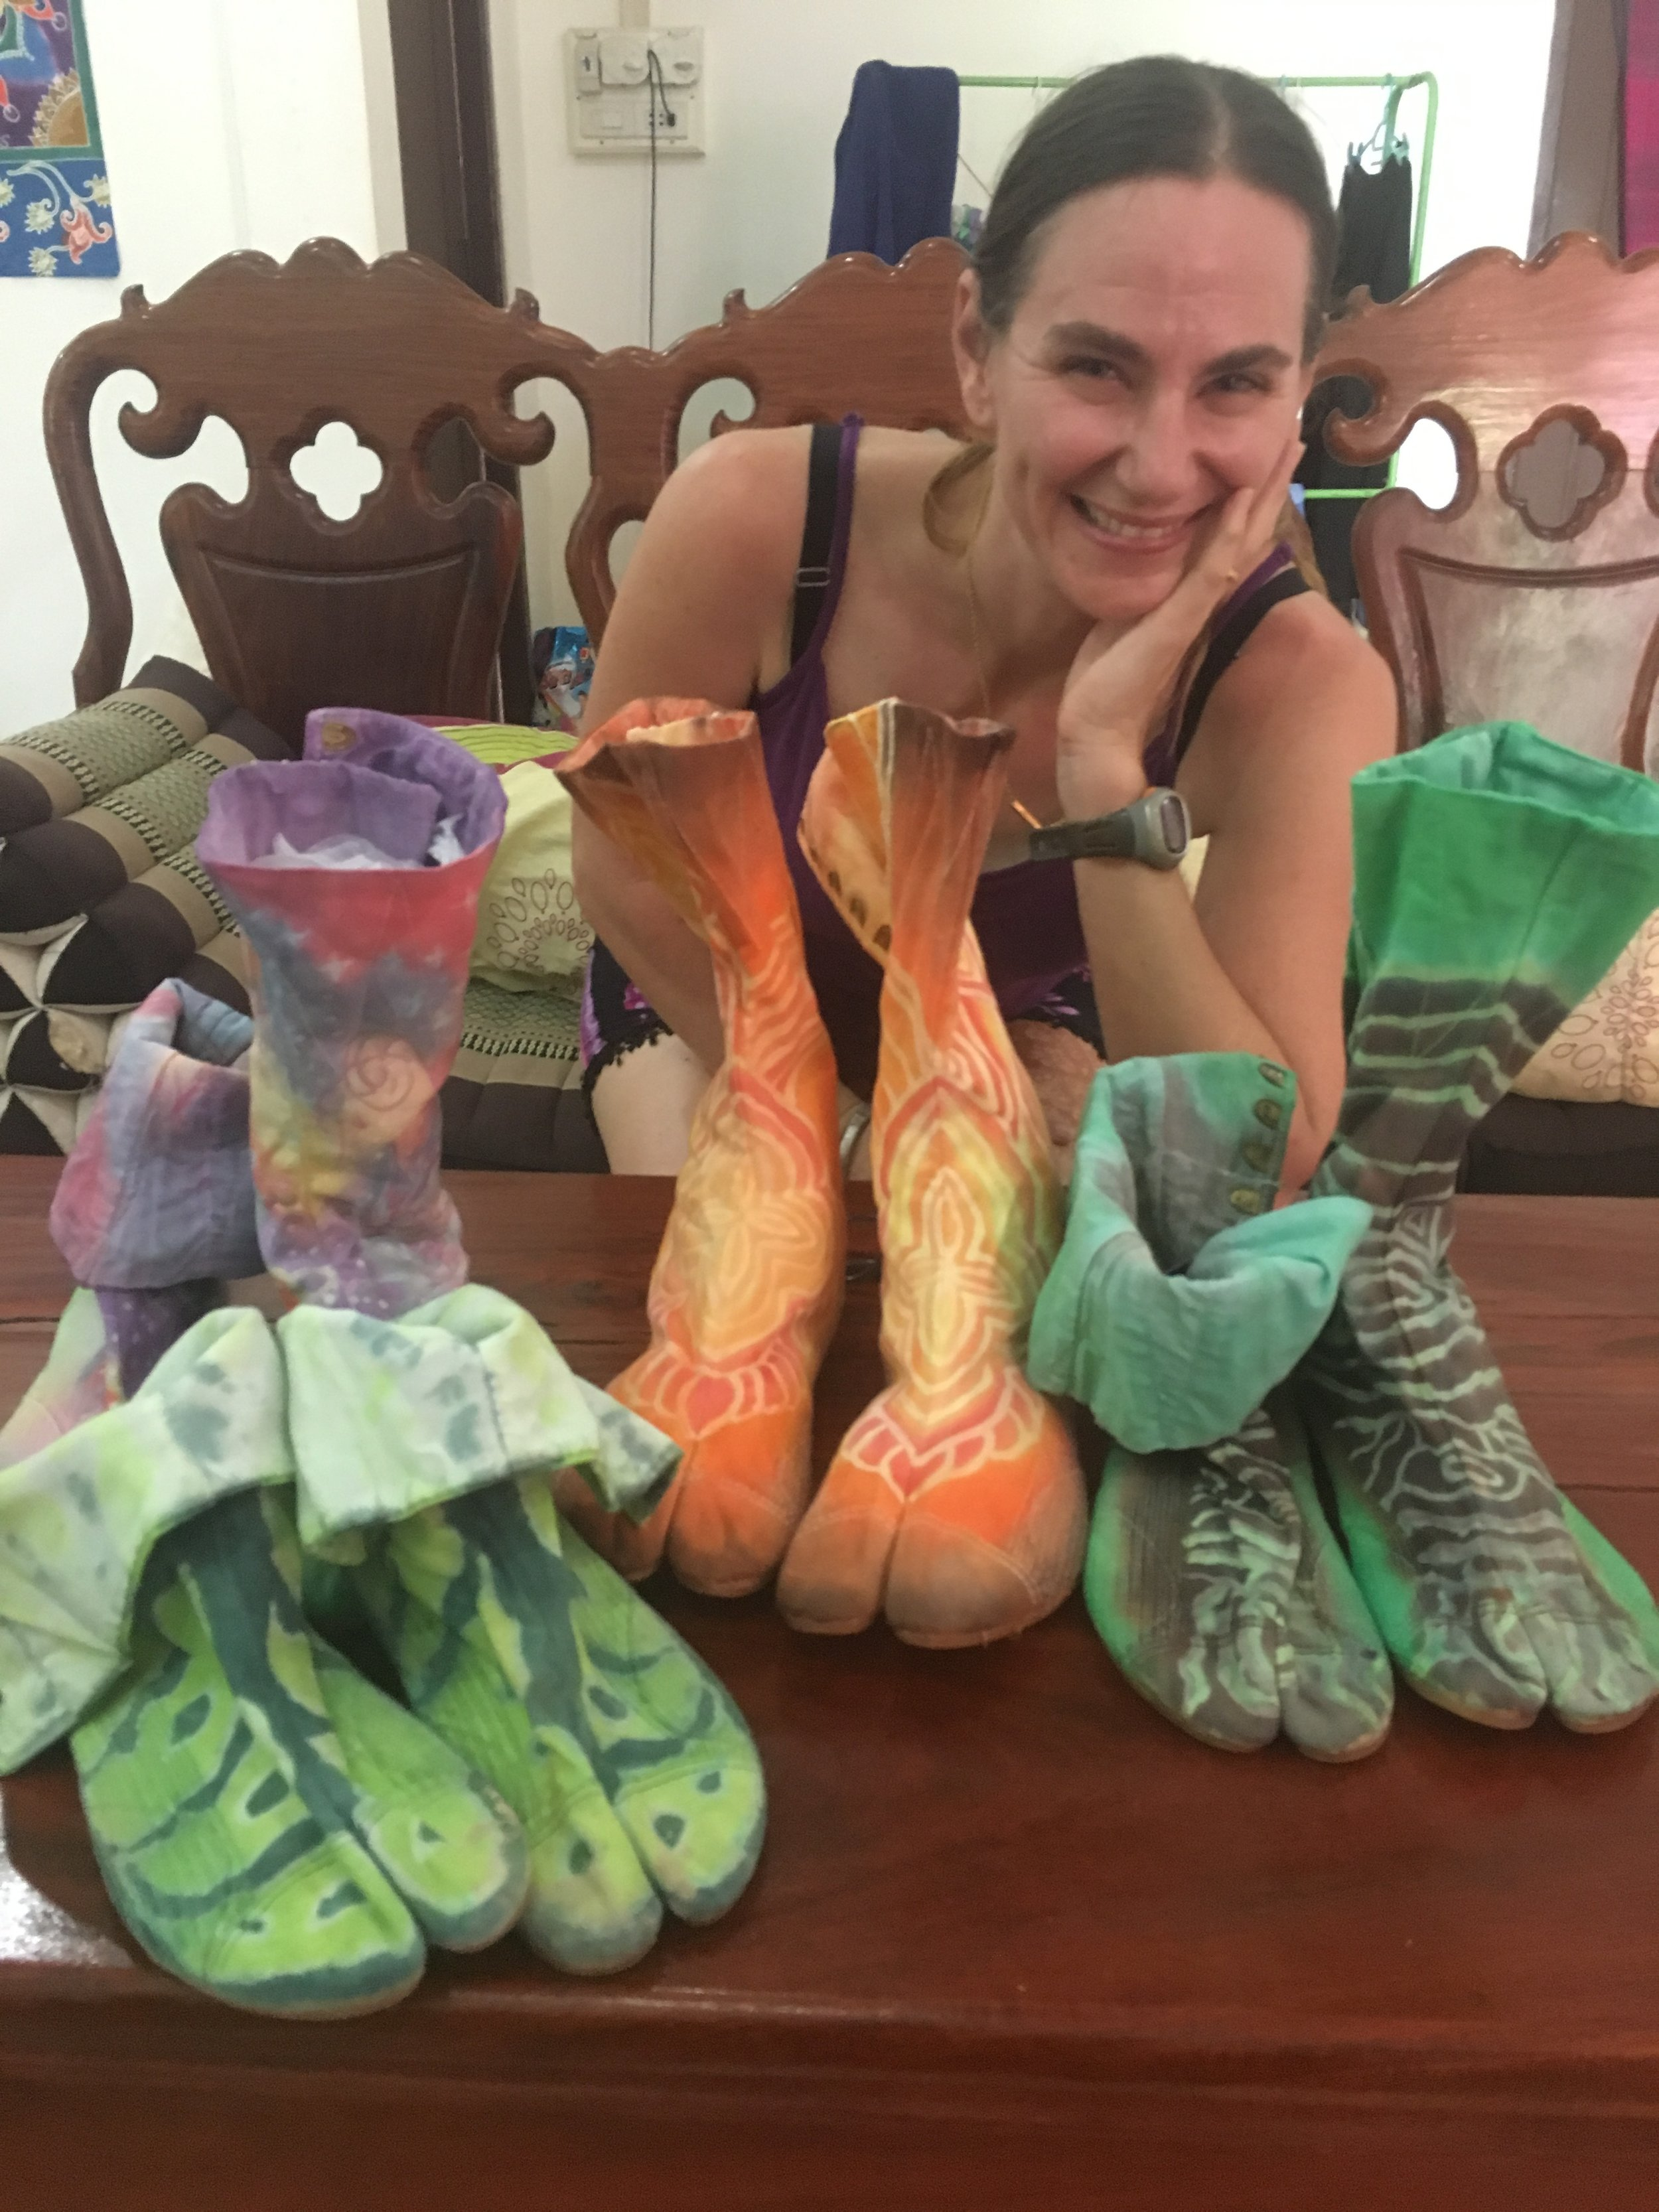 Innana poses with some of the booties she's made in her home studio in Laos.